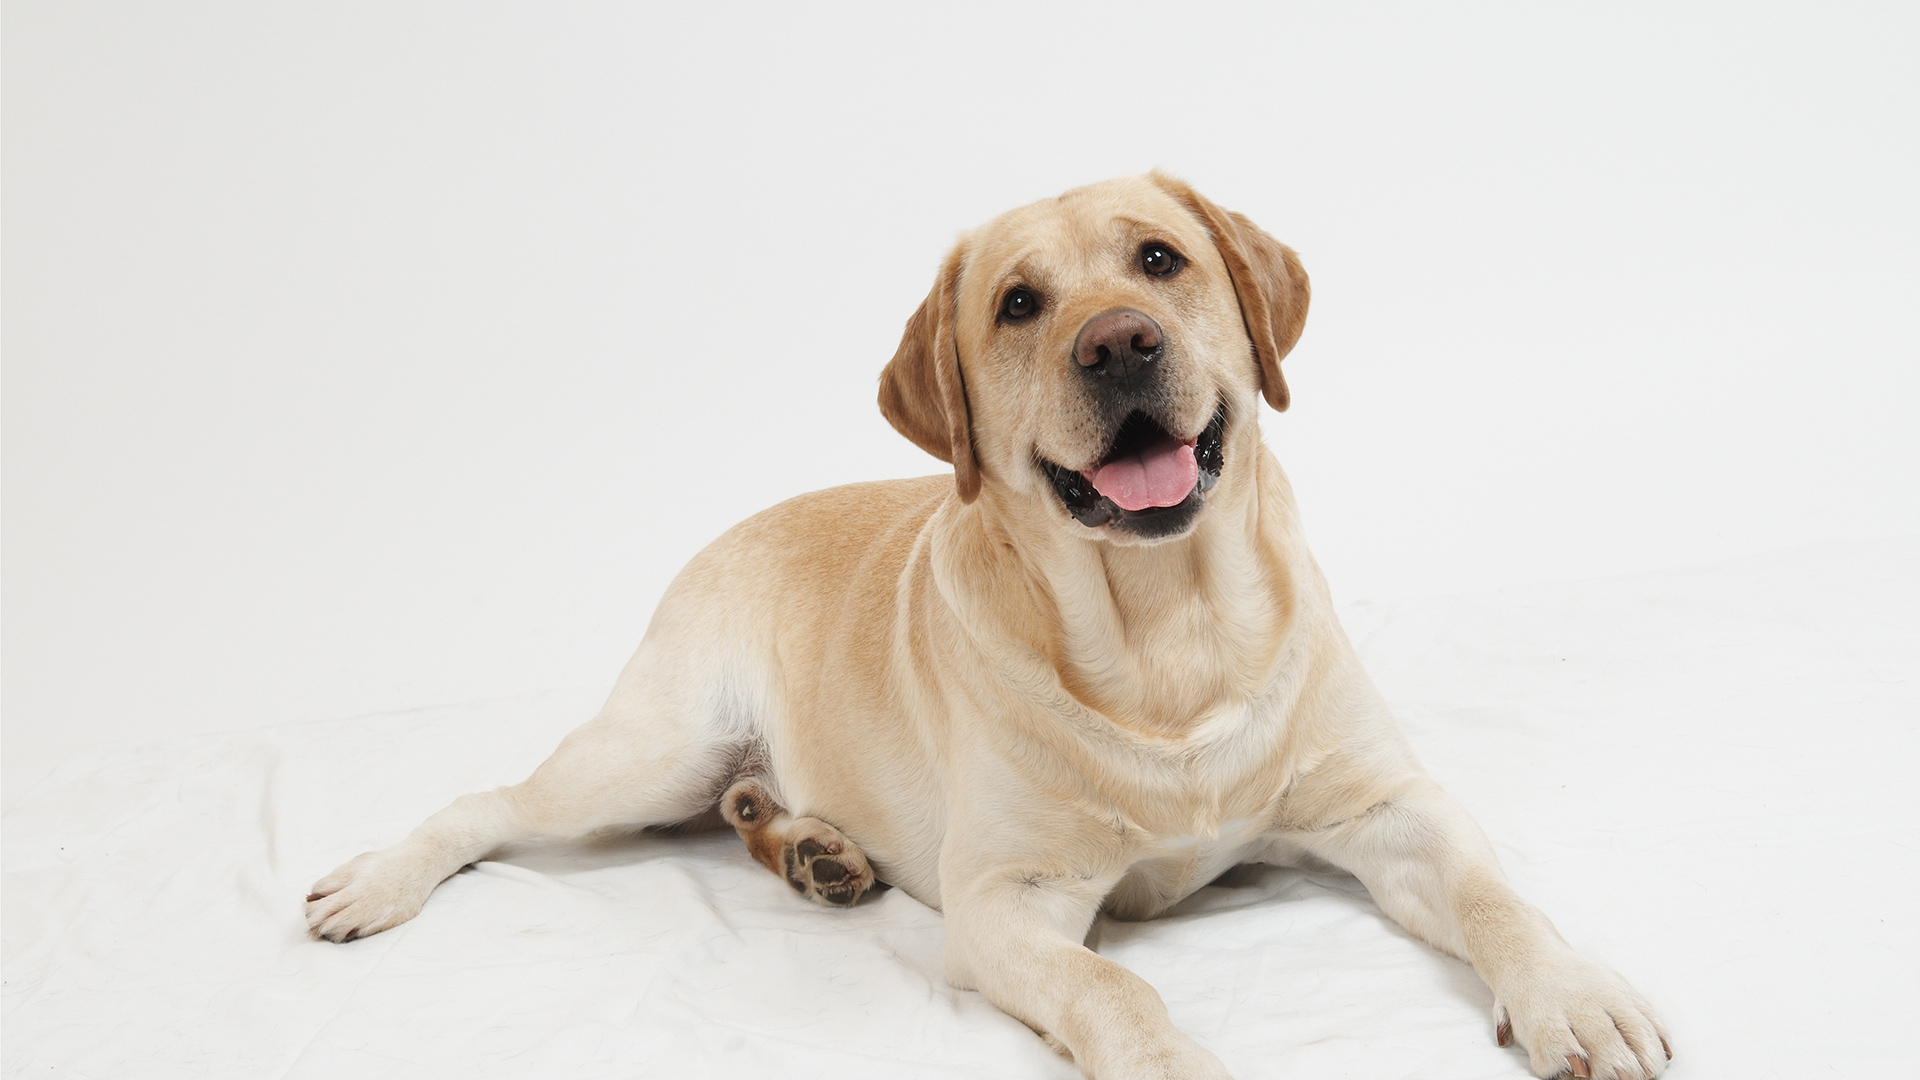 How To Care For A Pregnant Dog: An Insight - Ejournalz